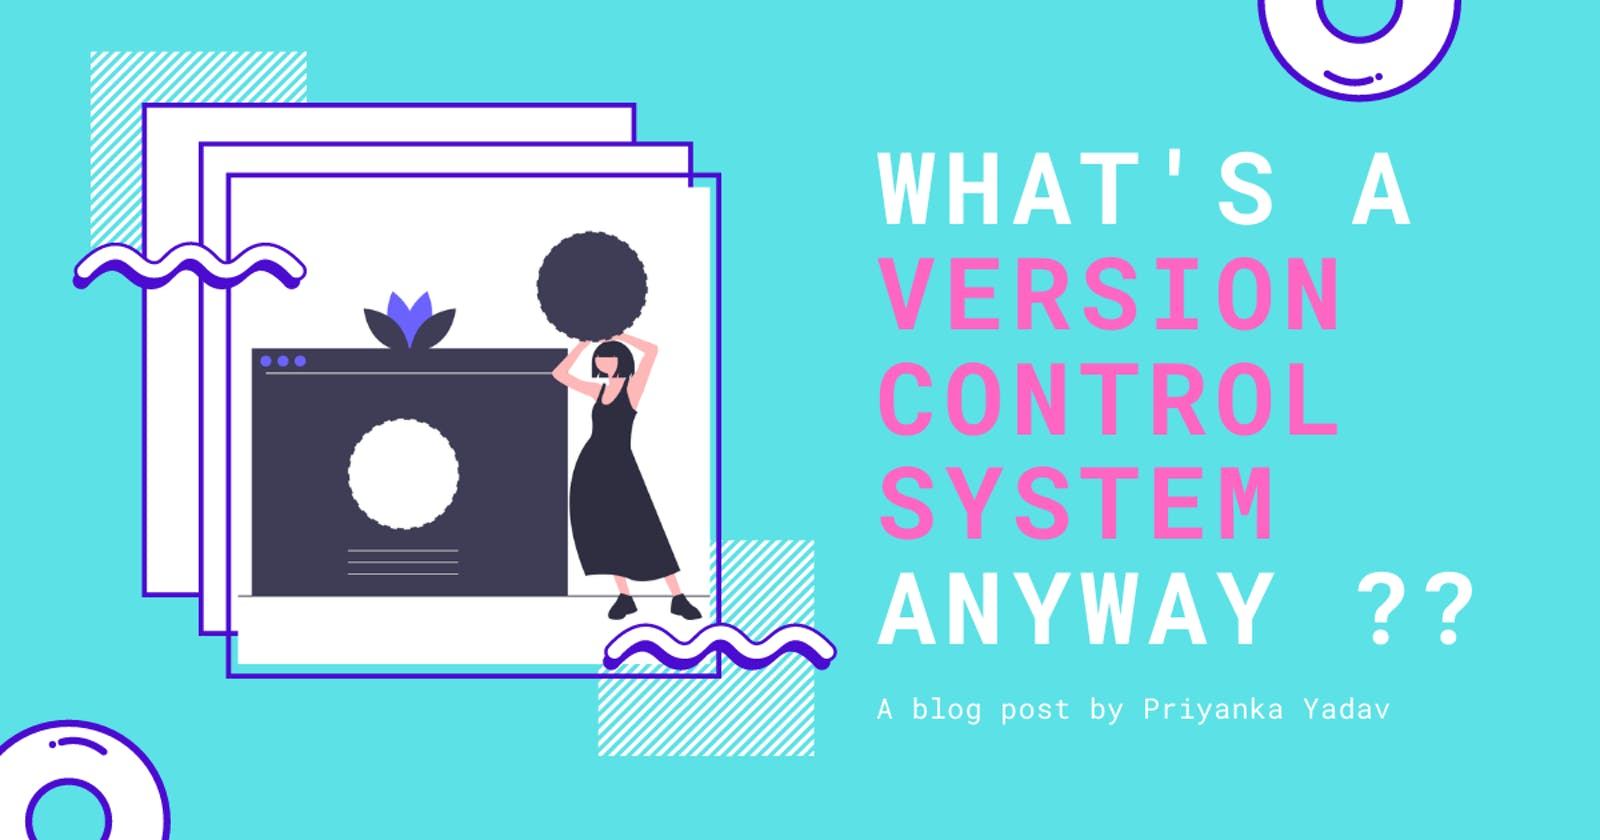 What's a Version Control System anyway?